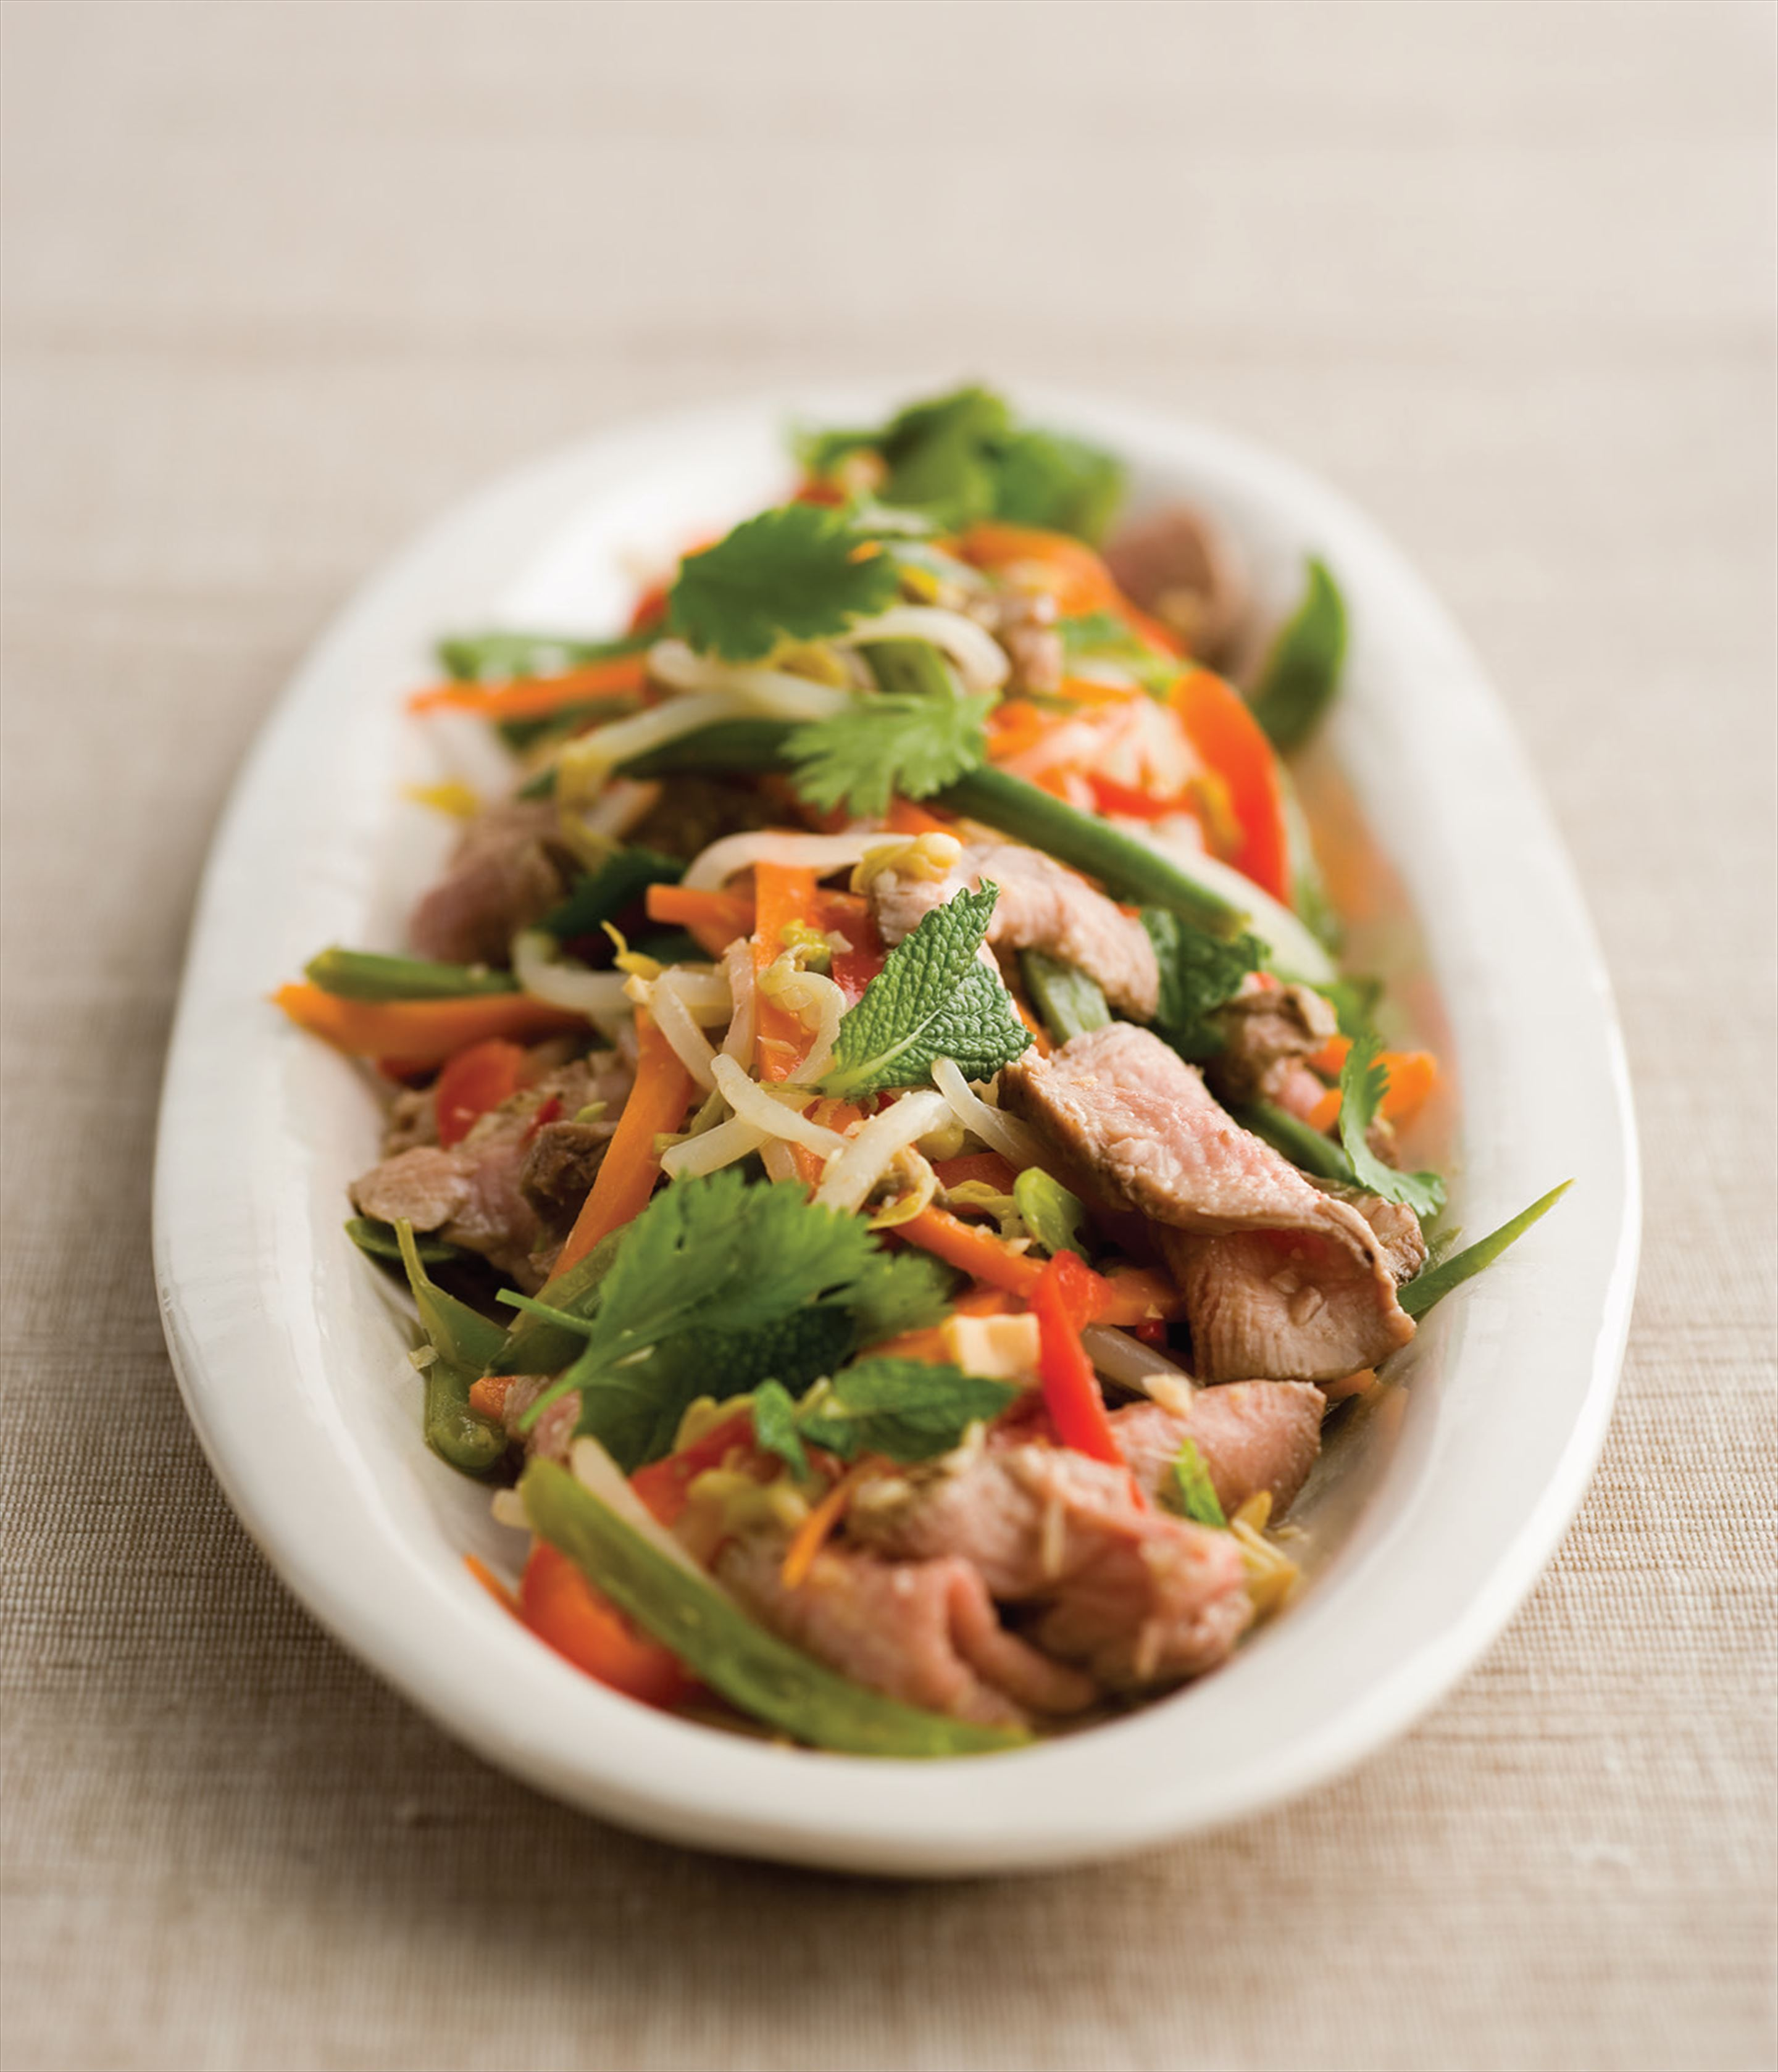 Thai beef salad with vegetables